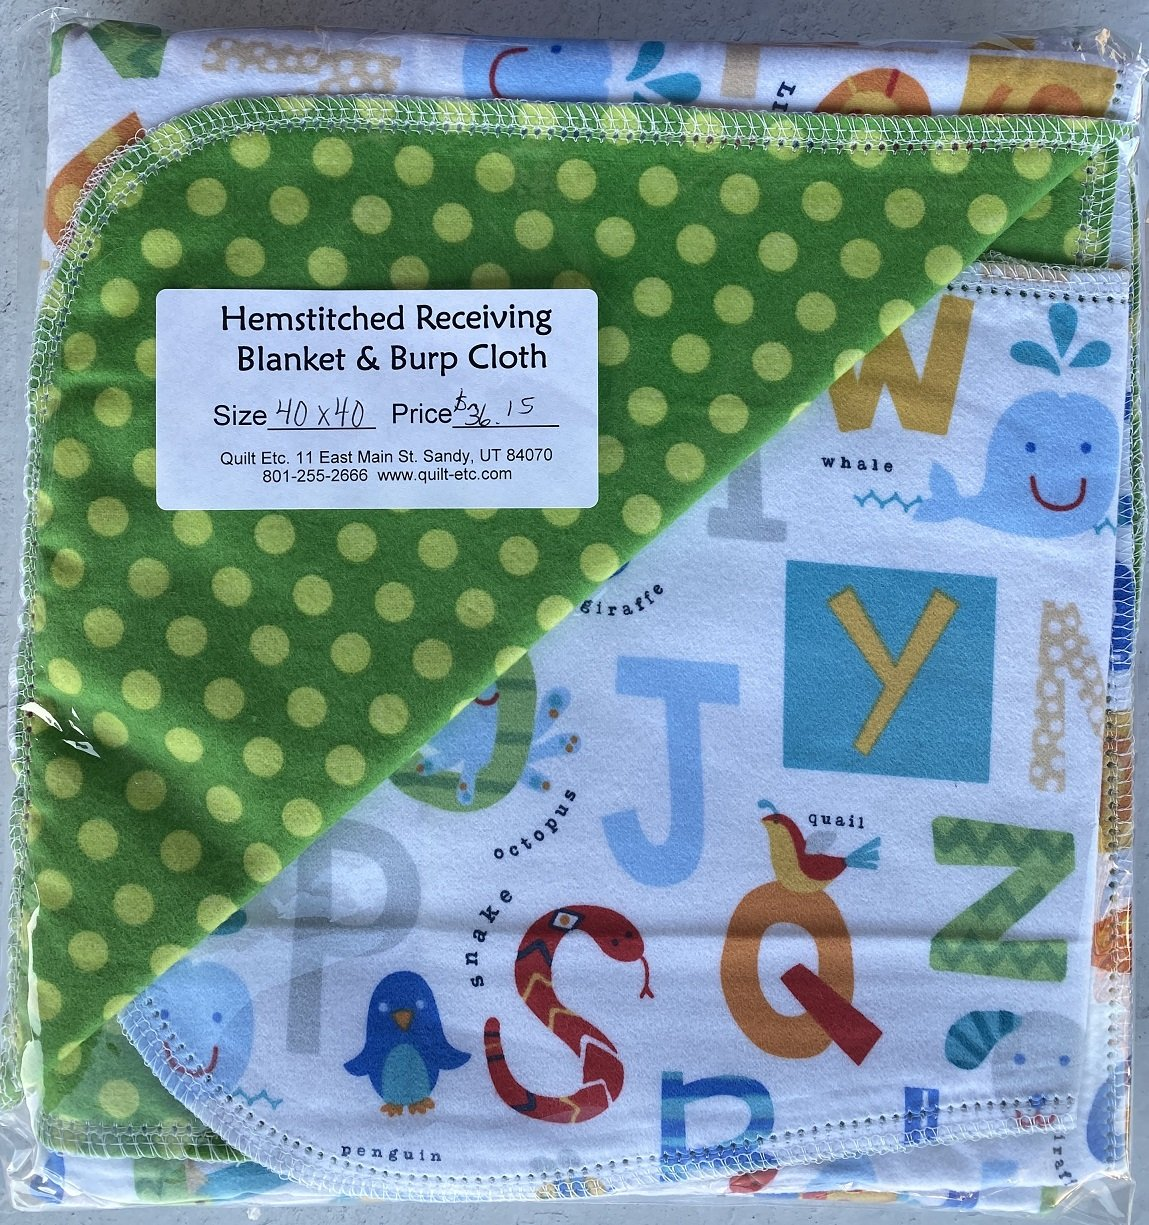 Hemstitched Receiving Blanket & Burp Cloth 7